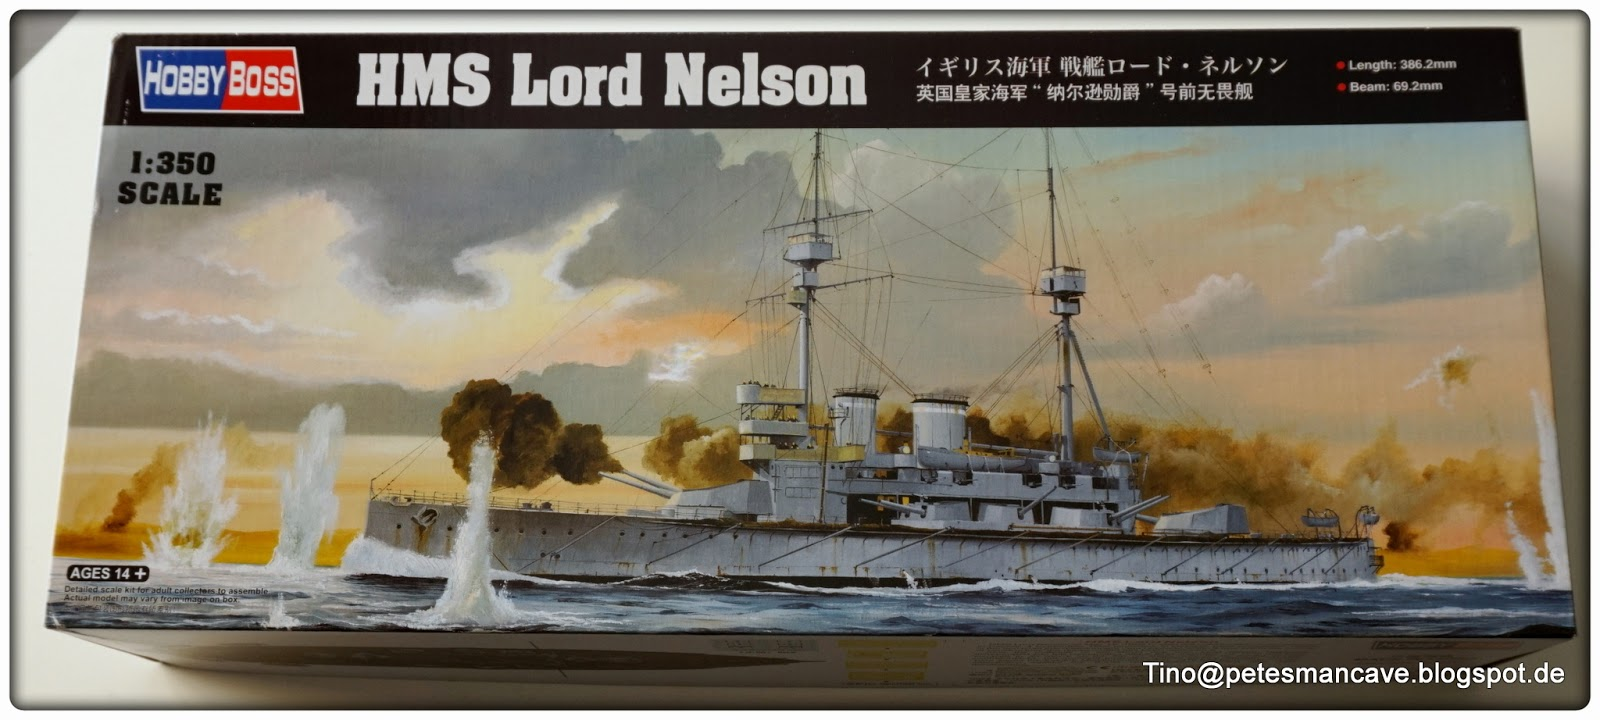 Man Cave Nelson : Pete´s man cave hobby boss hms lord nelson